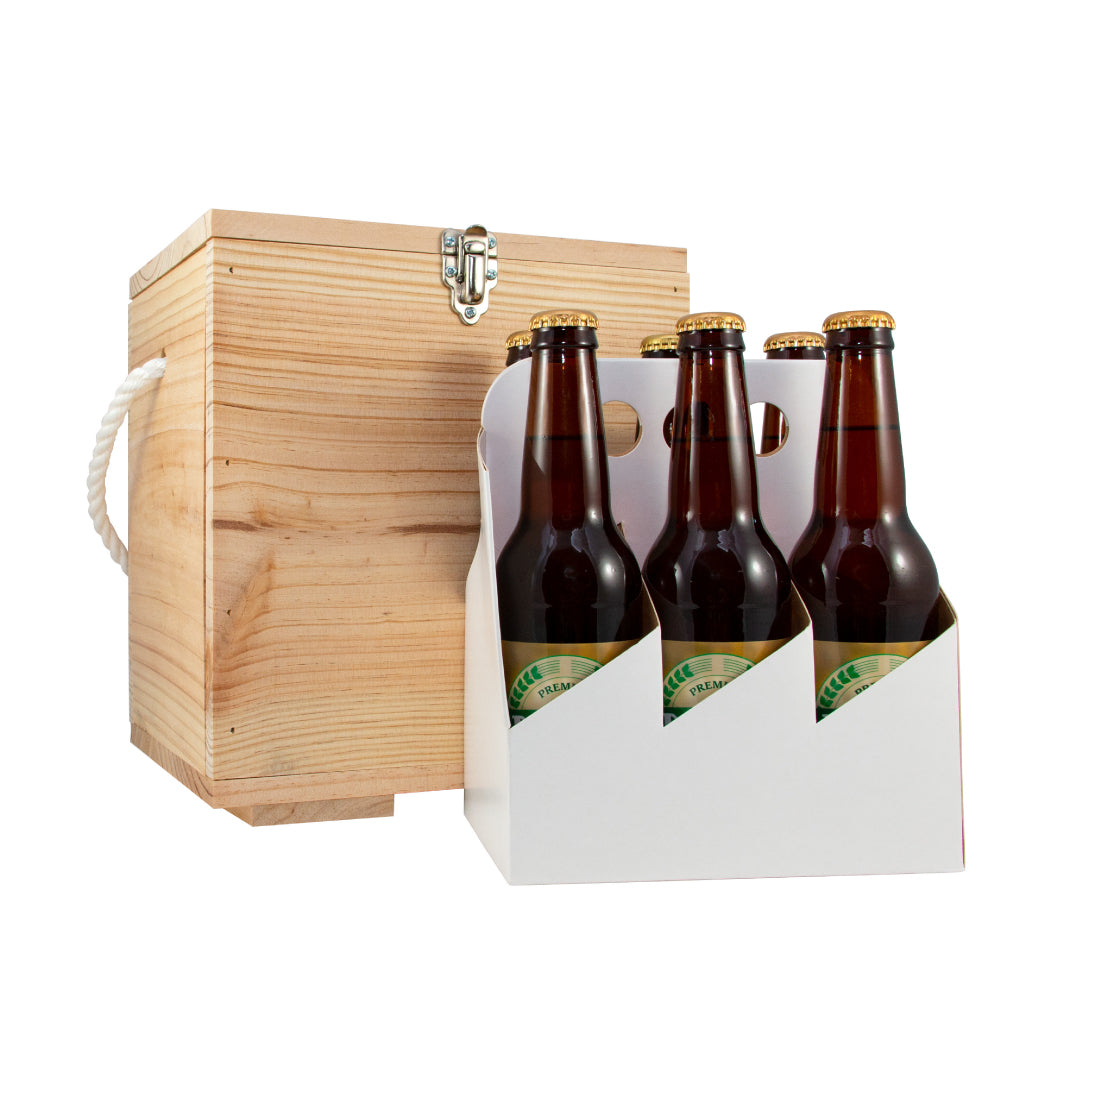 Craft Lager 4.3% - Wooden Beer Box - 6 pack